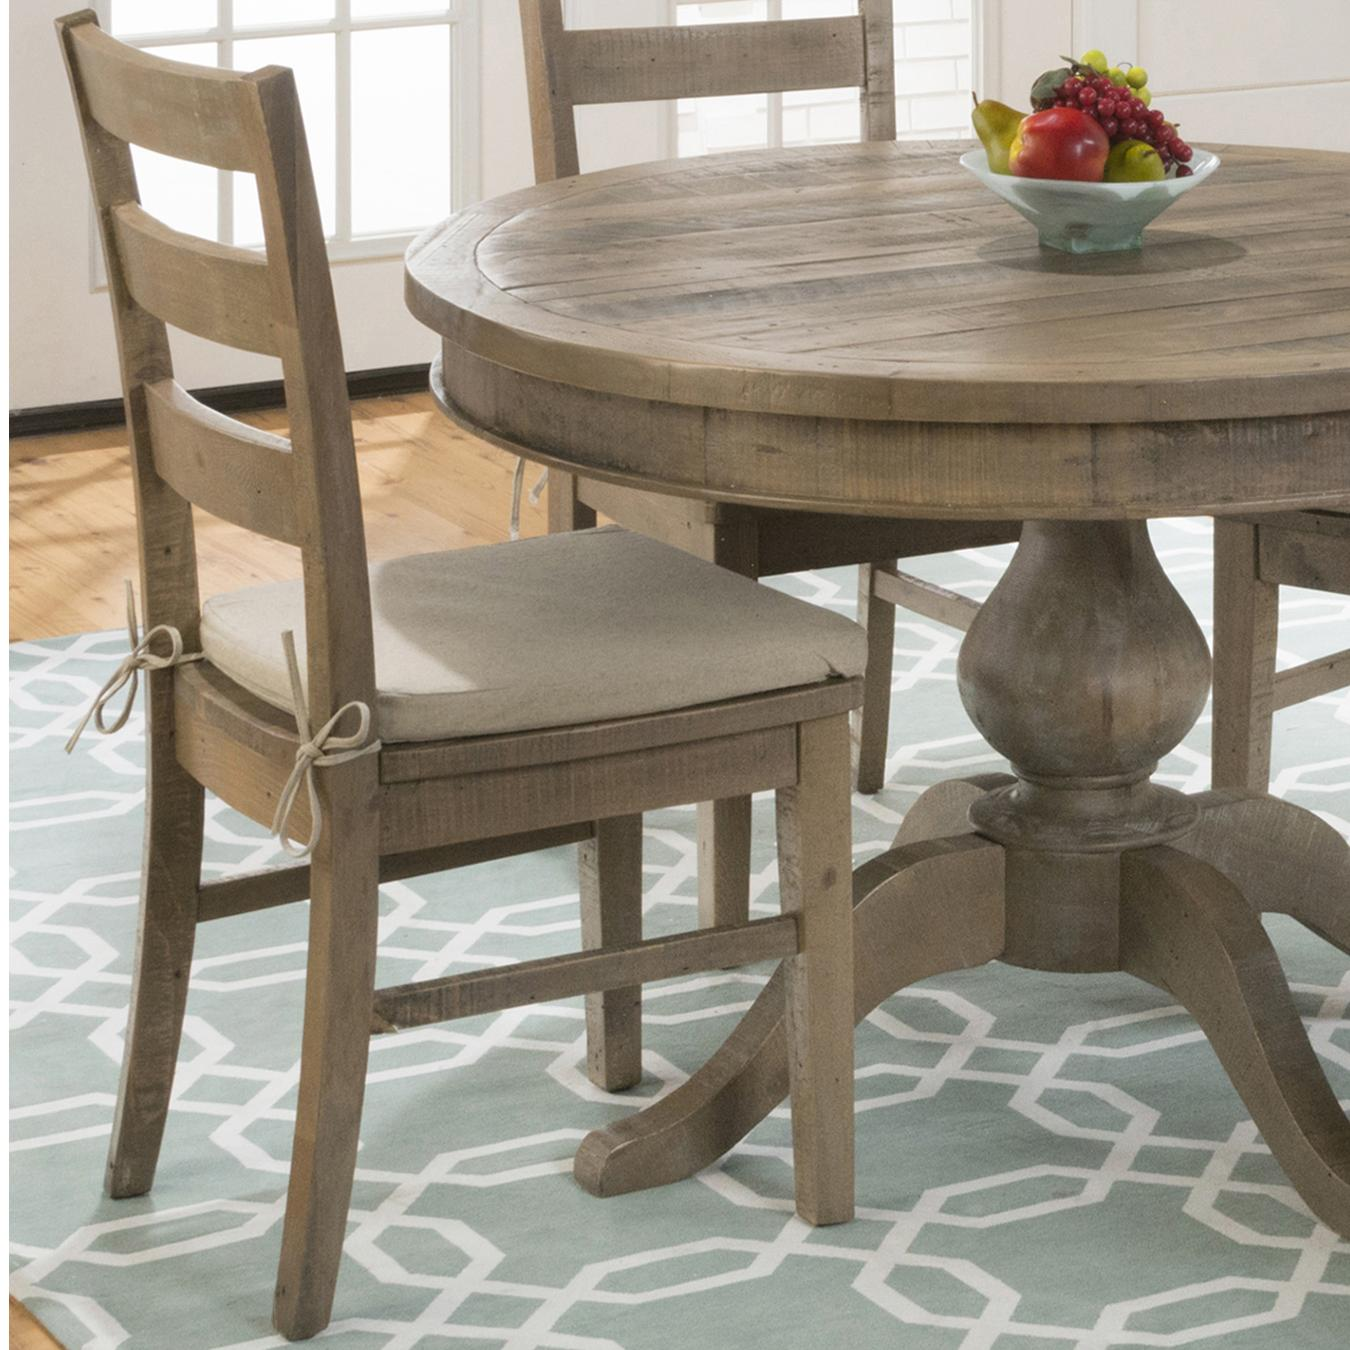 Jofran Bancroft Mills Dining Side Chairs  - Item Number: 941-538KD+CUSHION-941